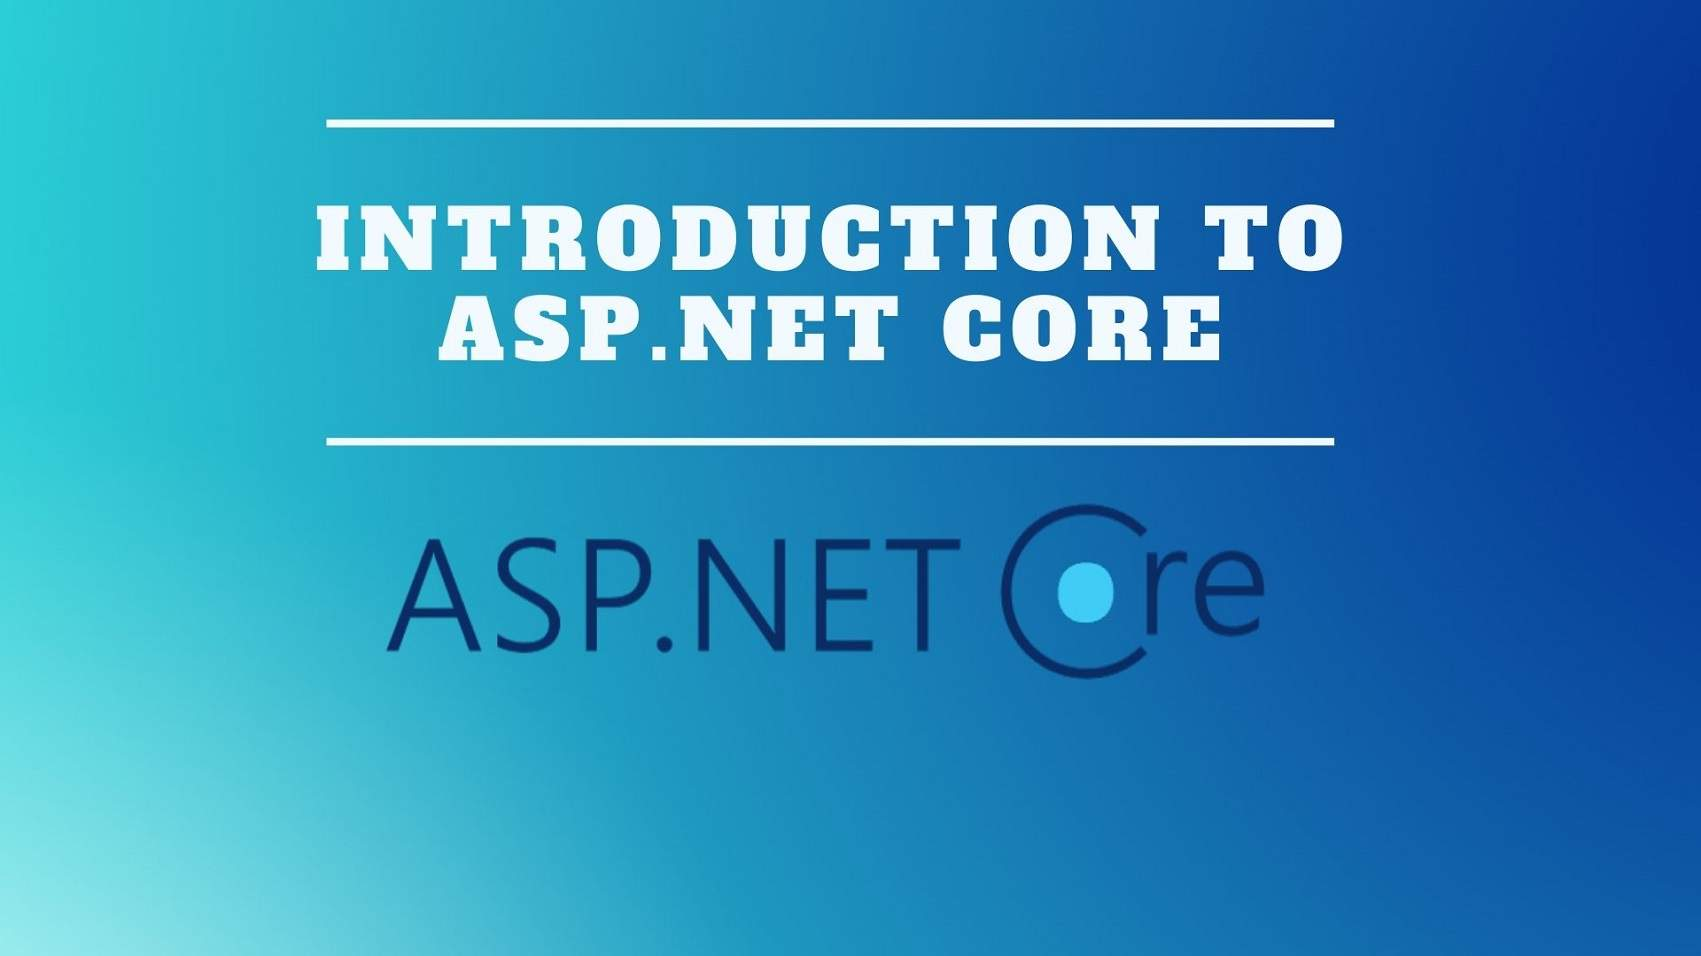 Introduction to ASP.NET Core